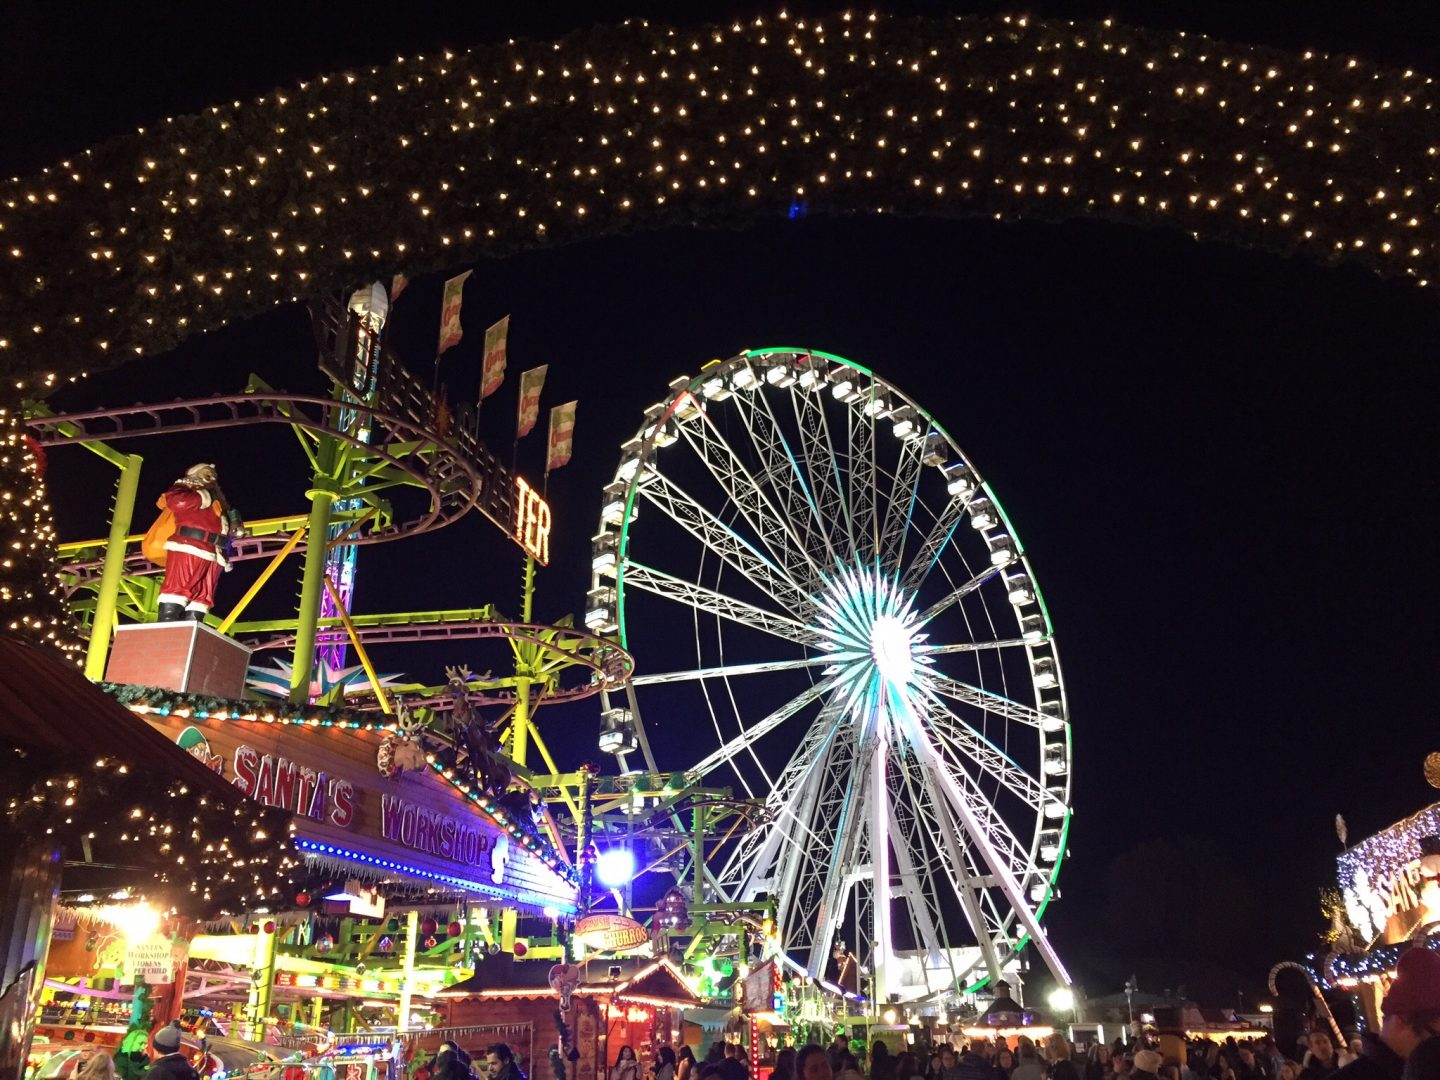 7 things to do in London to make your festive season the best